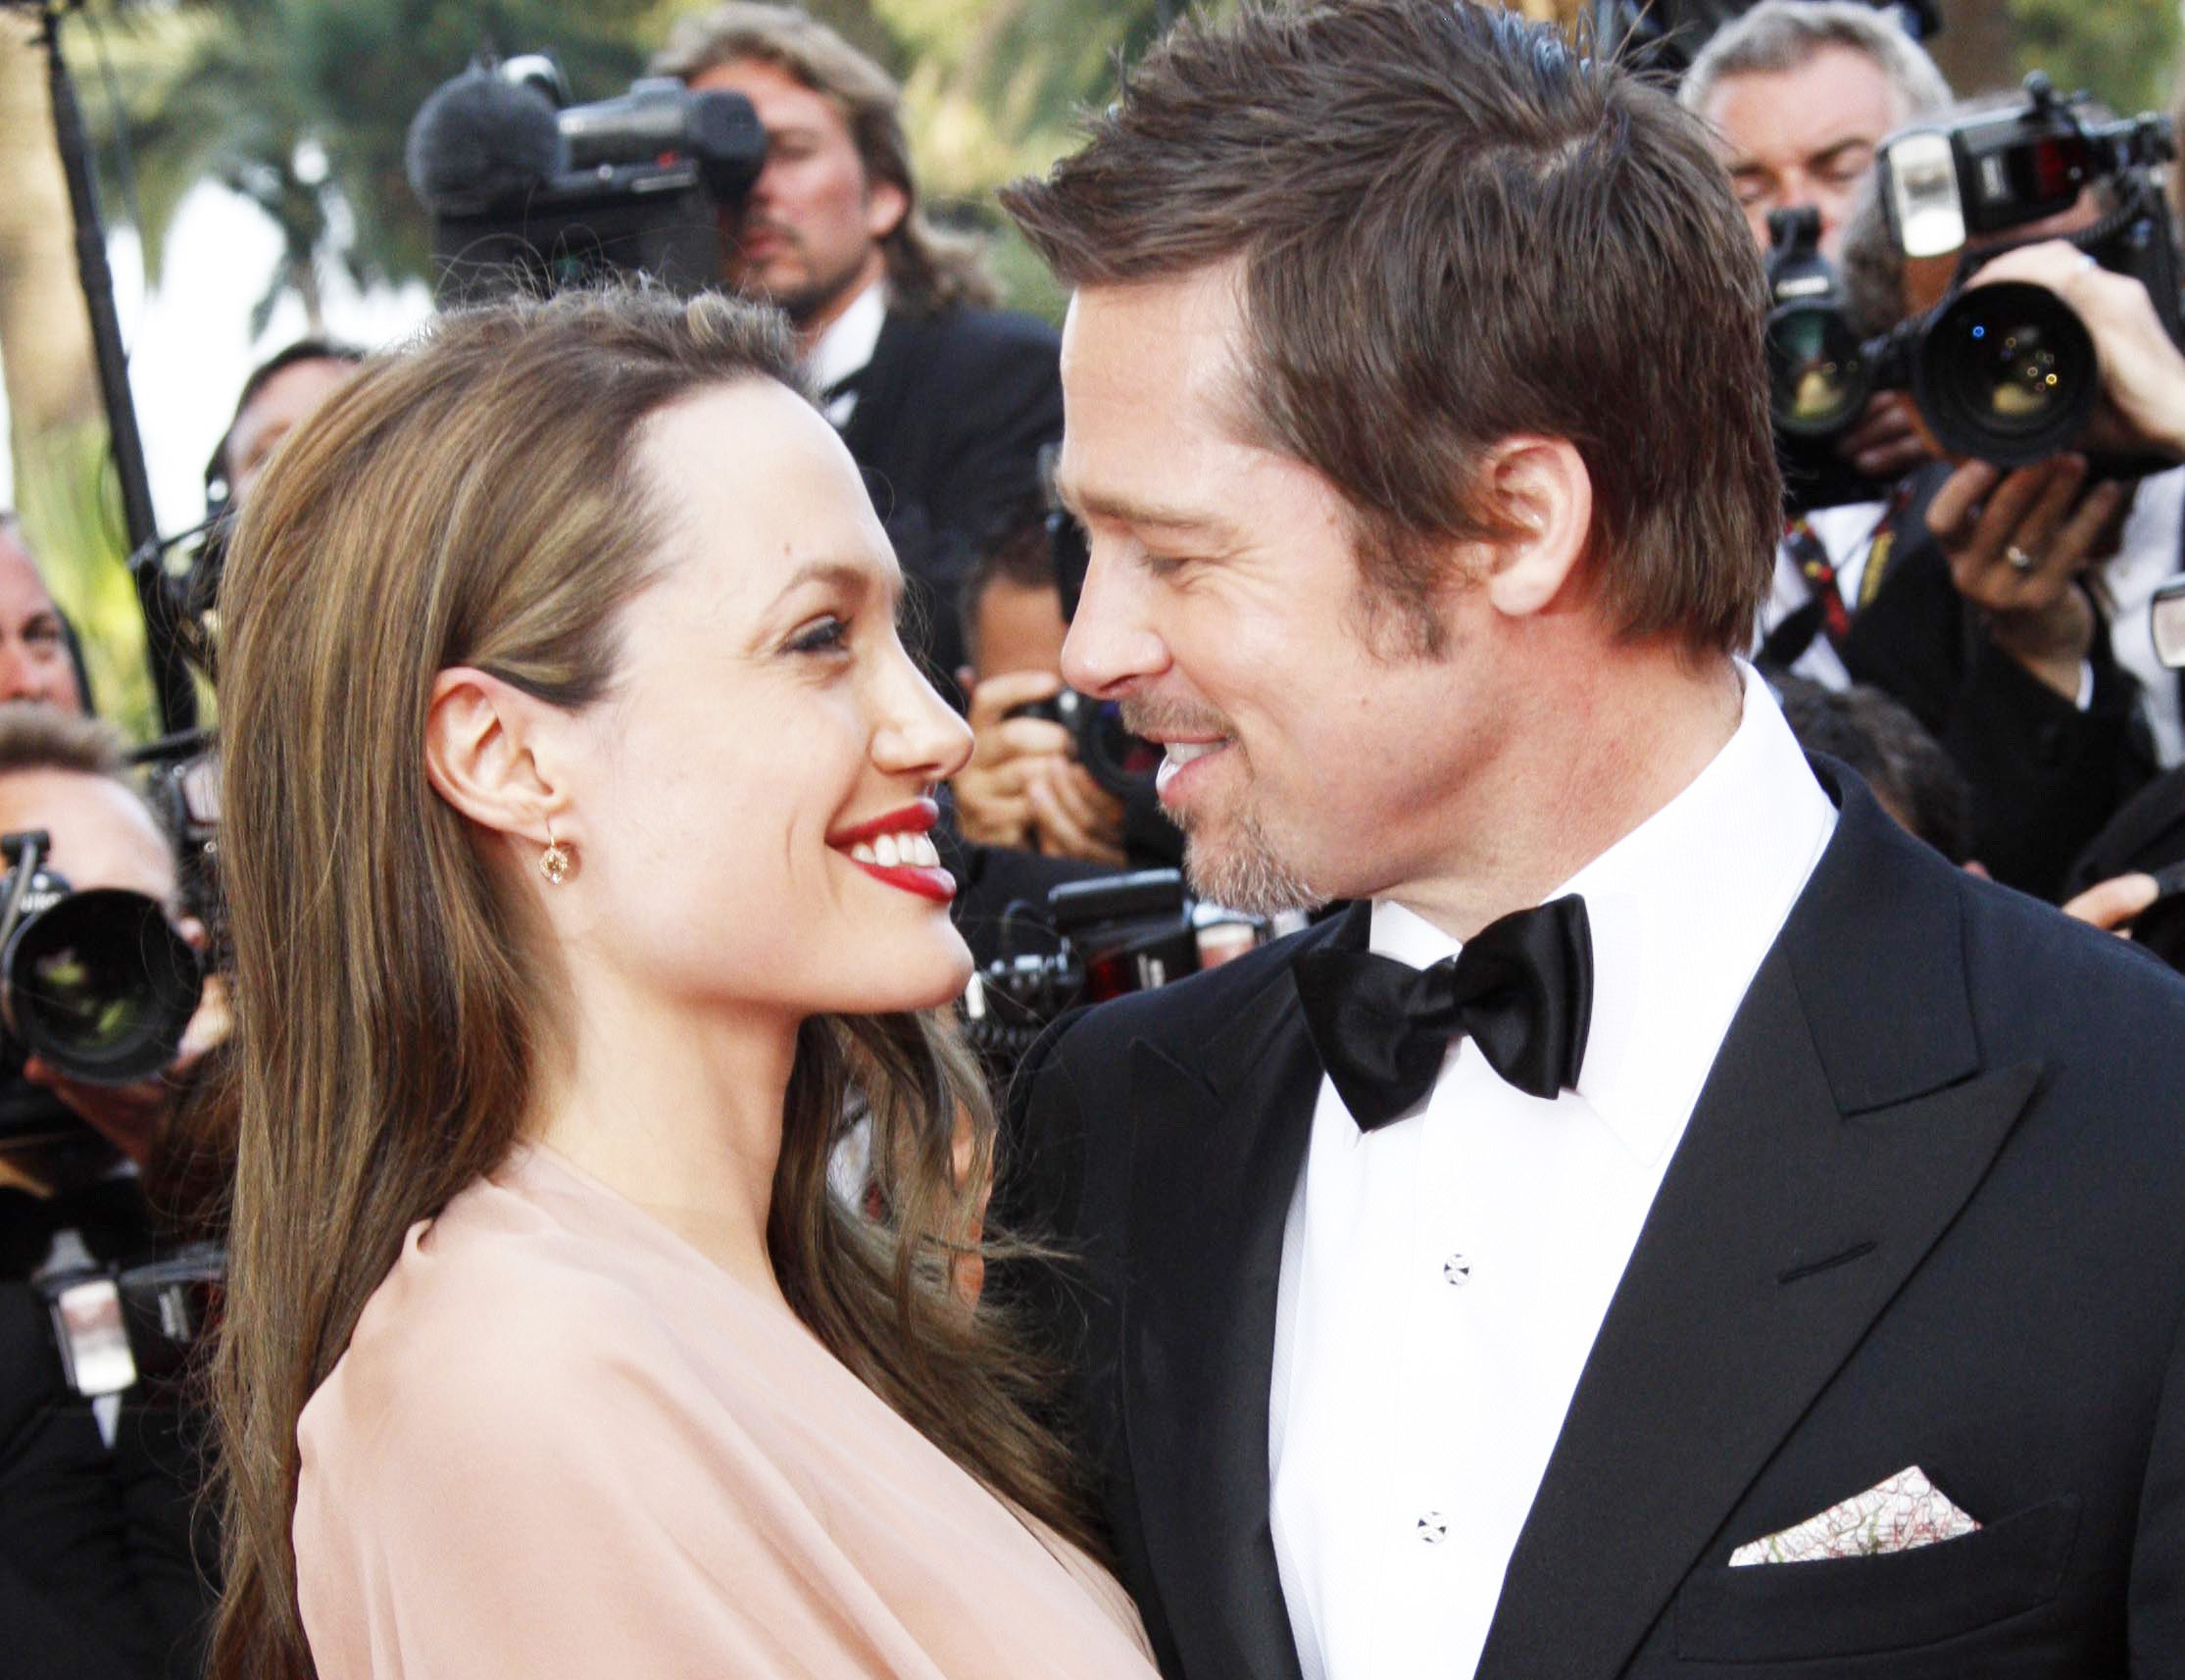 CANNES, FRANCE - MAY 20: Angelina Jolie and Brad Pitt attend the Inglourious Basterds premiere held at the Palais Des Festivals during the 62nd International Cannes Film Festival on May 20, 2009 in Cannes, France. (Photo by Eric Ryan/Getty Images) *** Local Caption *** Angelina Jolie;Brad Pitt